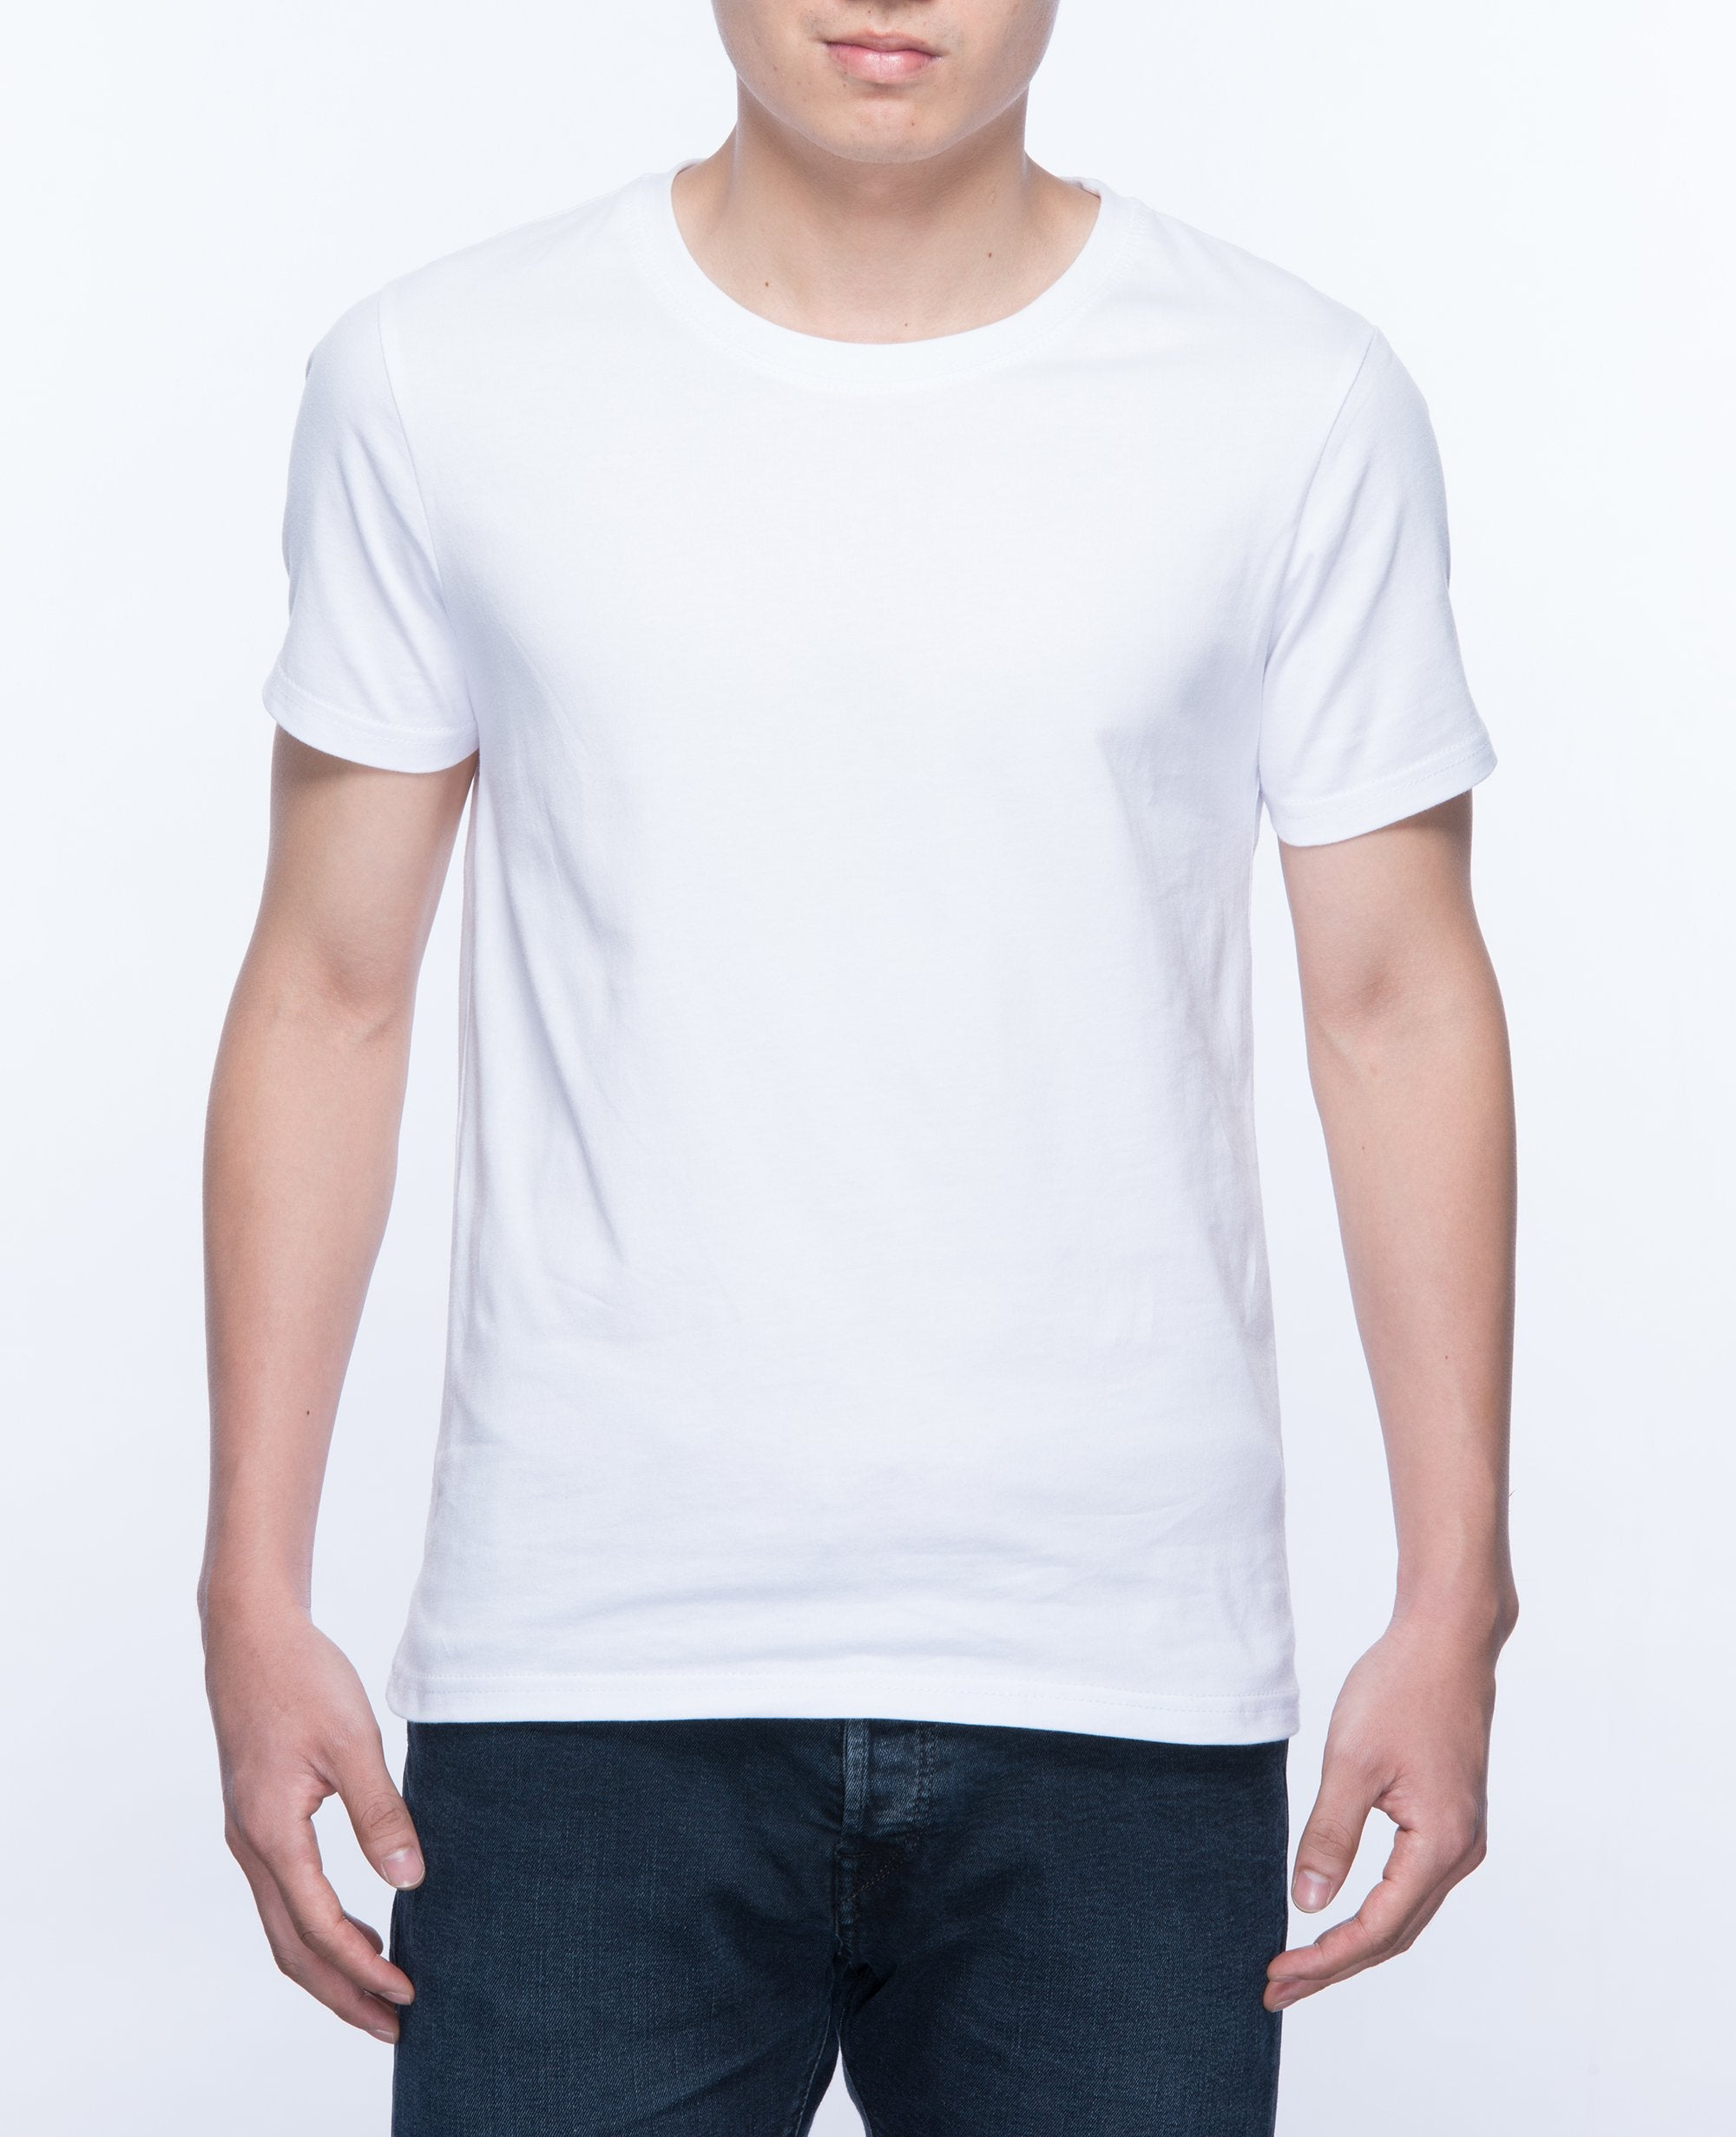 Basic T-shirt Men in White - T-Shirts - BRANMA - BRANMA